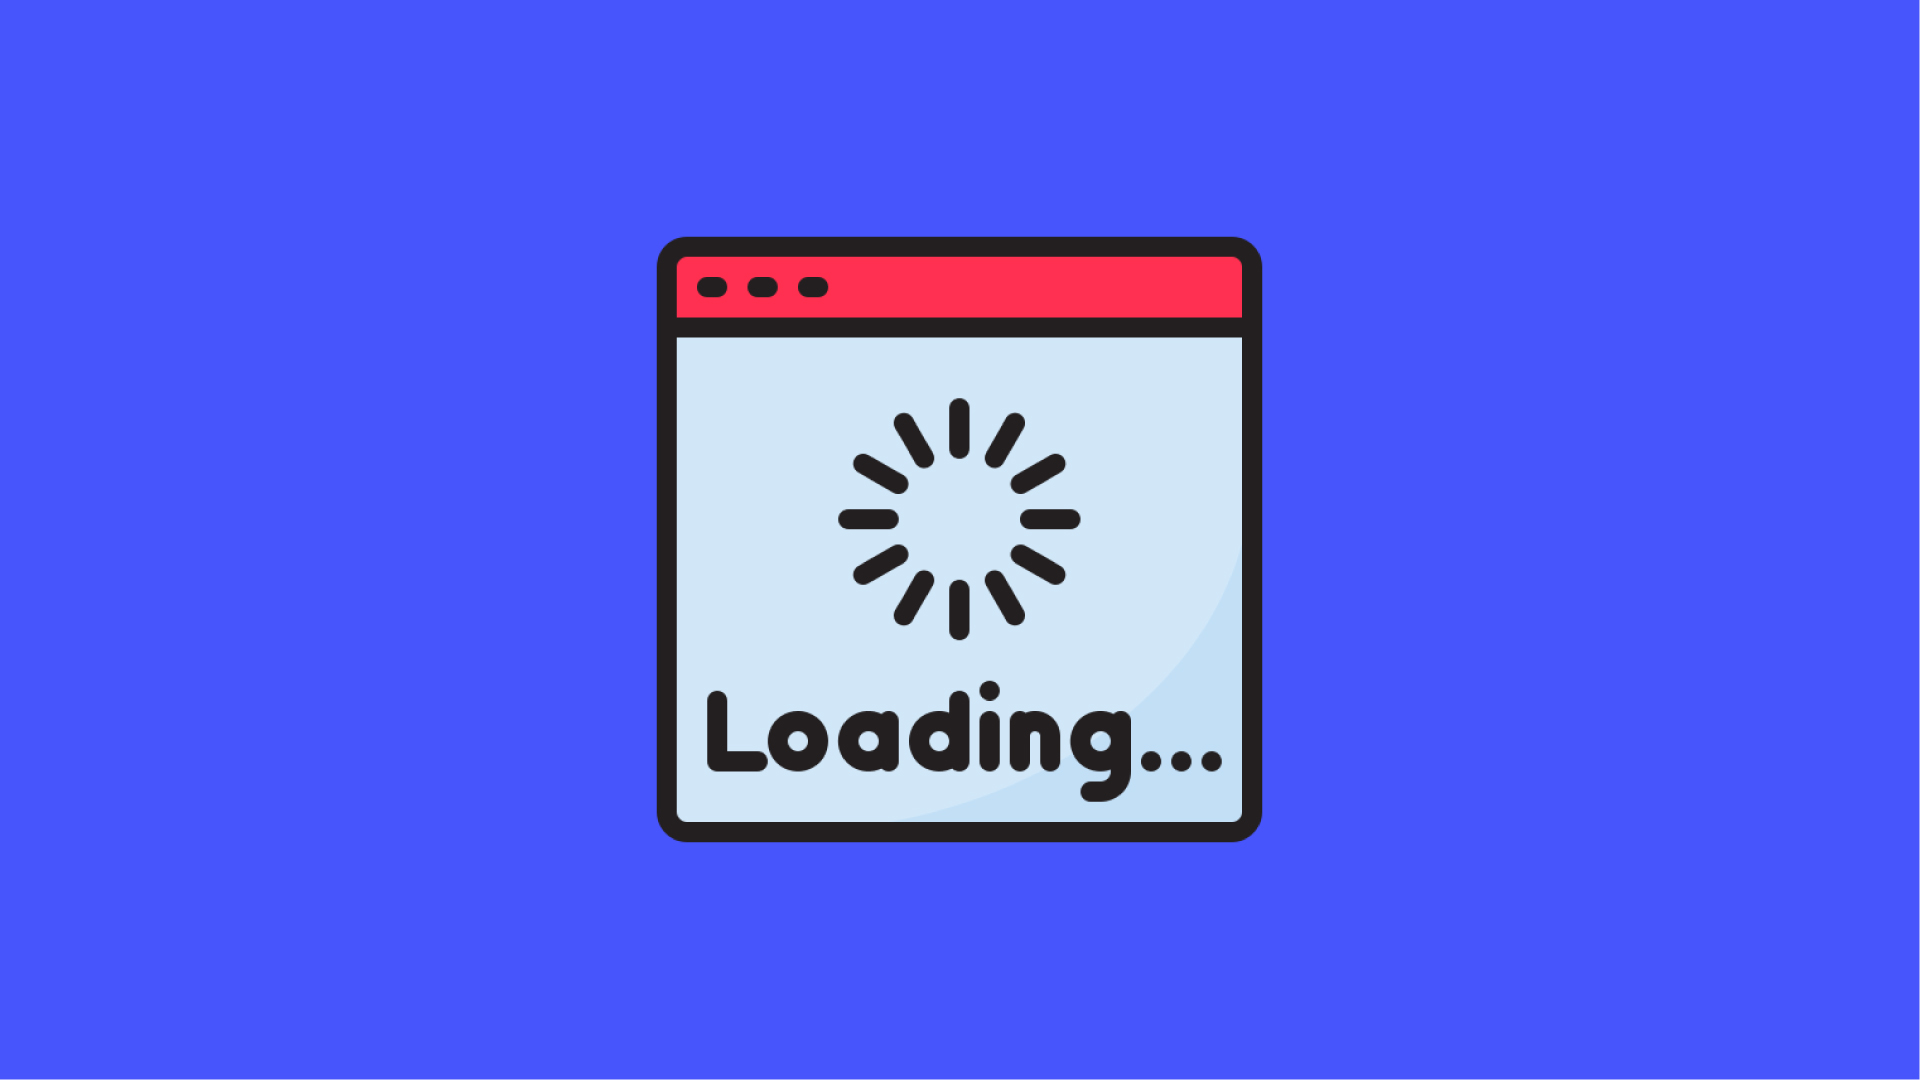 What should publishers do when their AdSense ads are not loading?